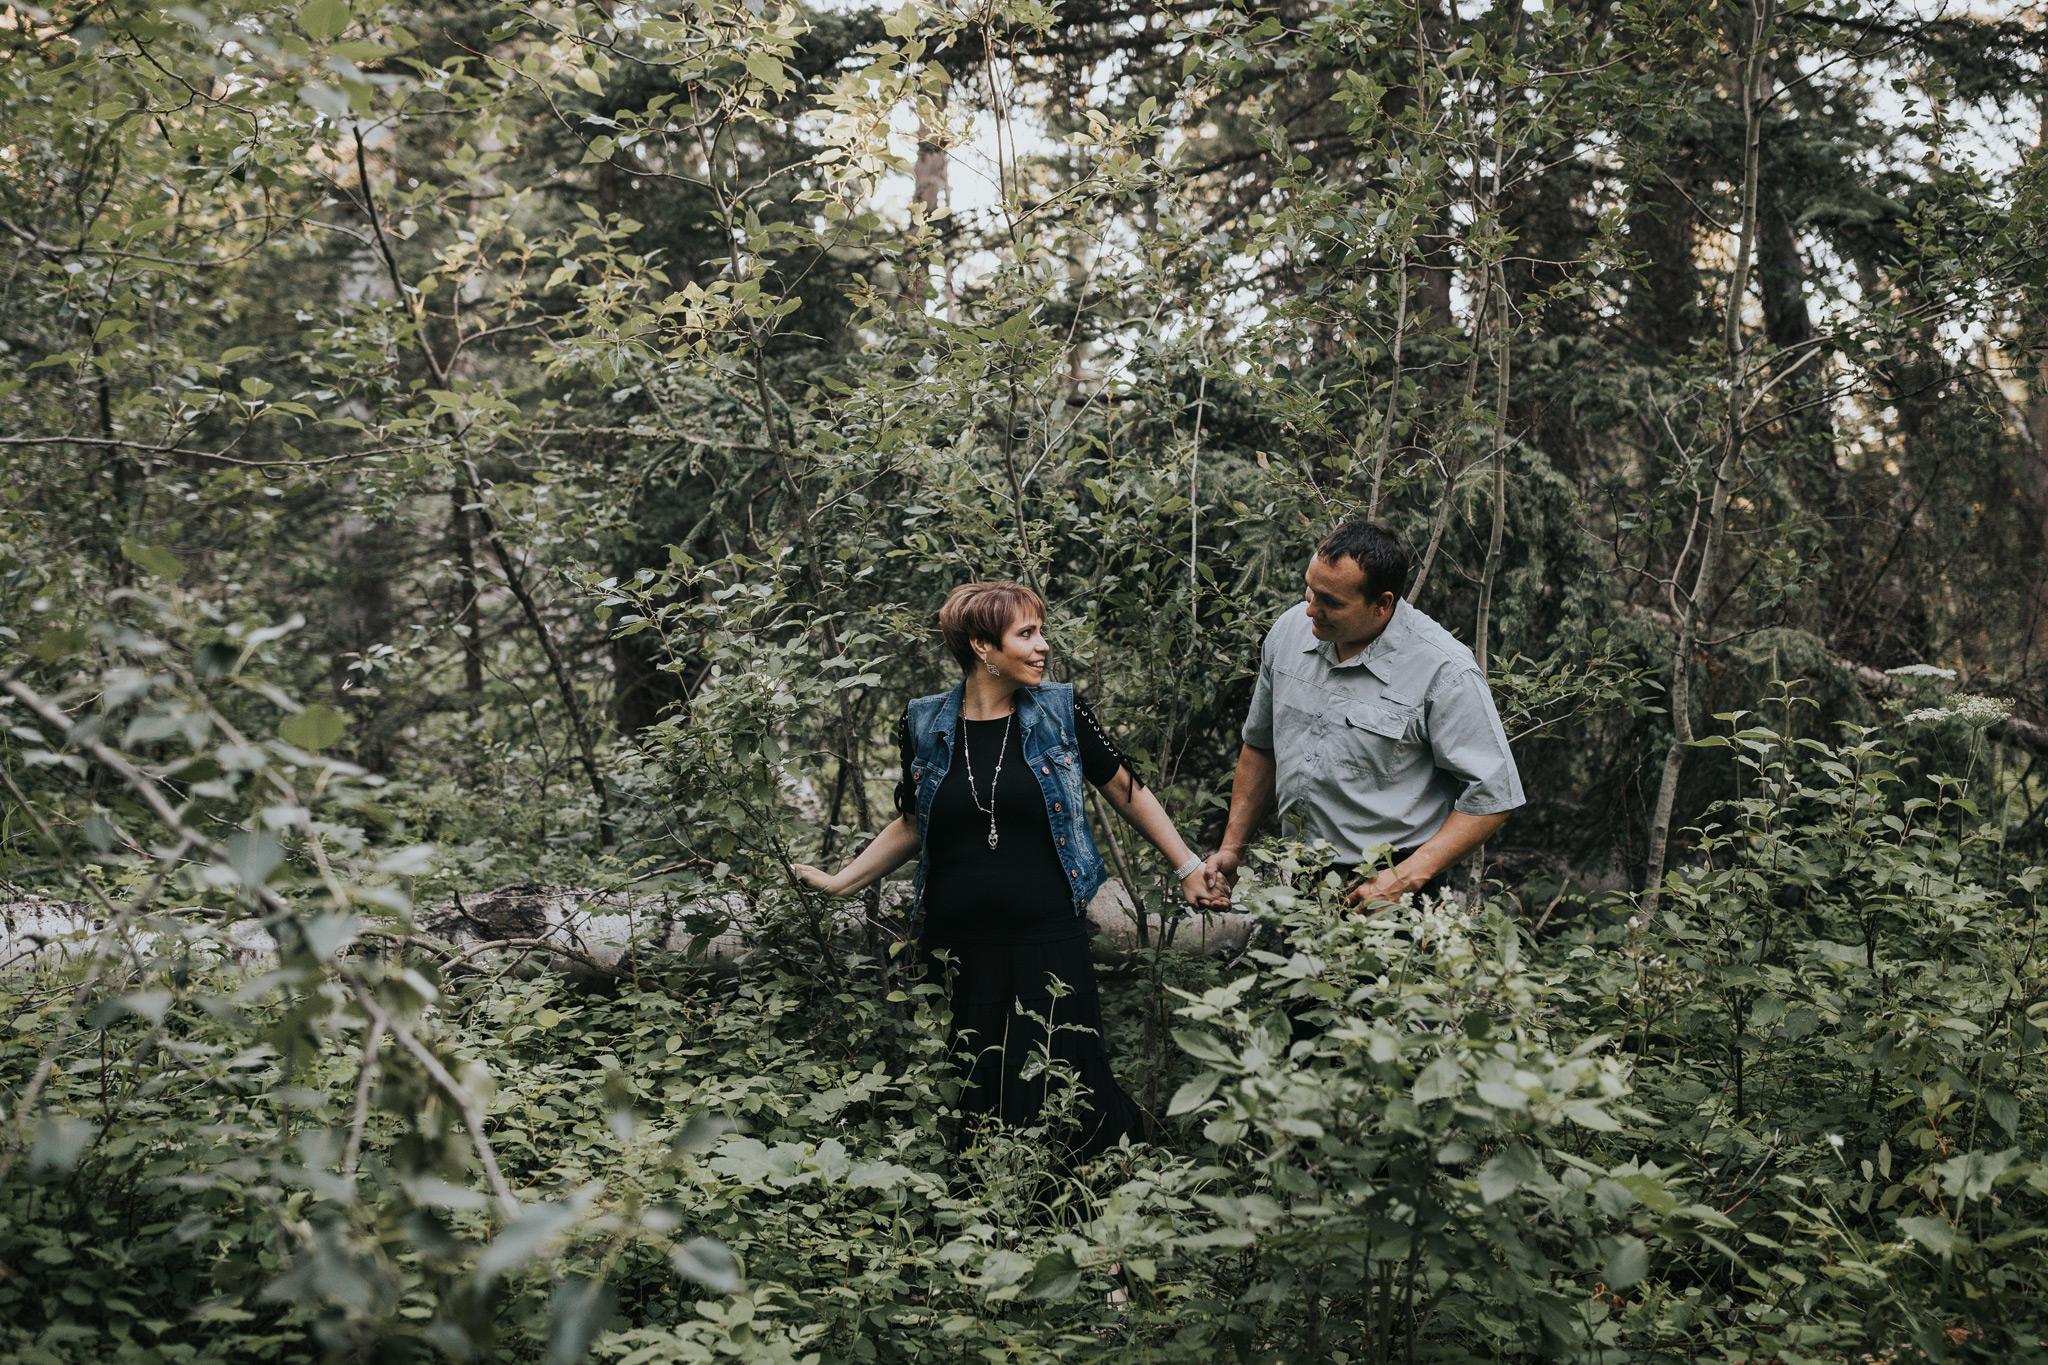 couple walking through forest brush smiling engagement photo